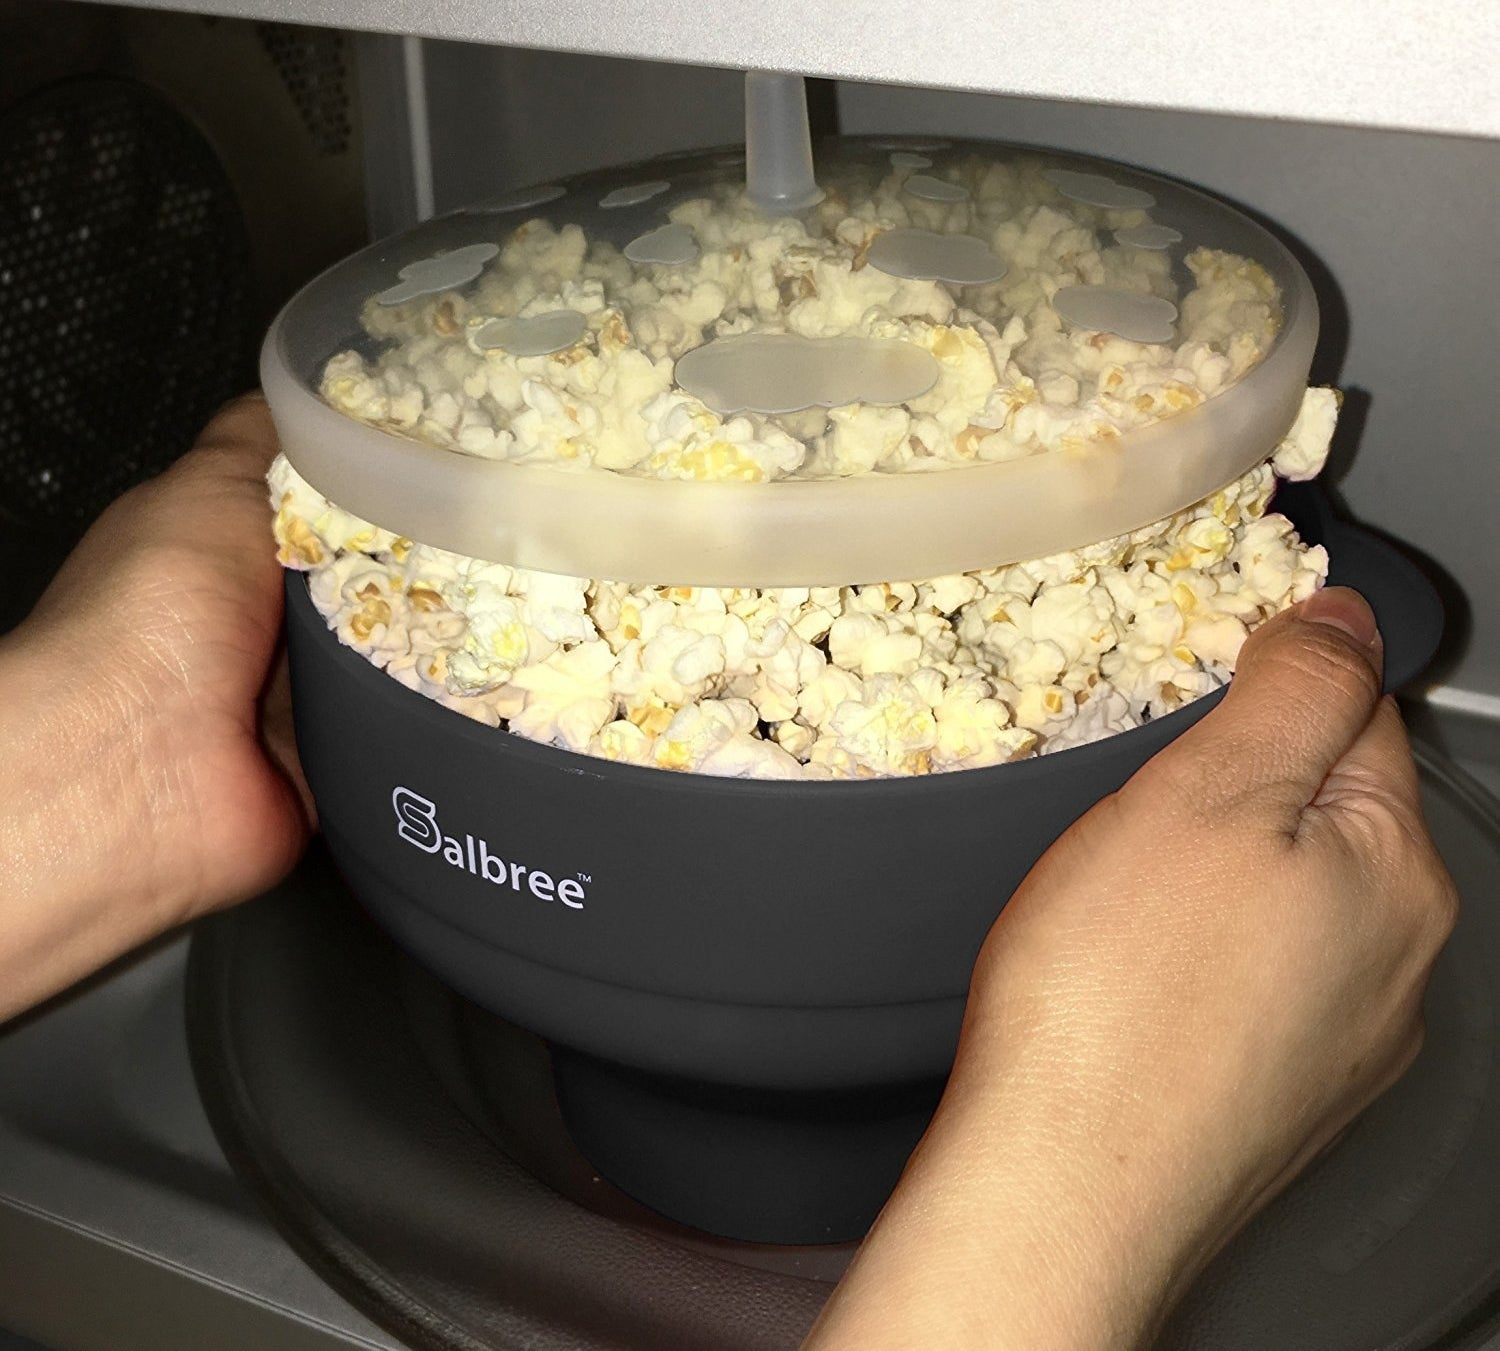 A collapsible popcorn popper that offers a healthier alternative to the microwavable bags you grew up with.